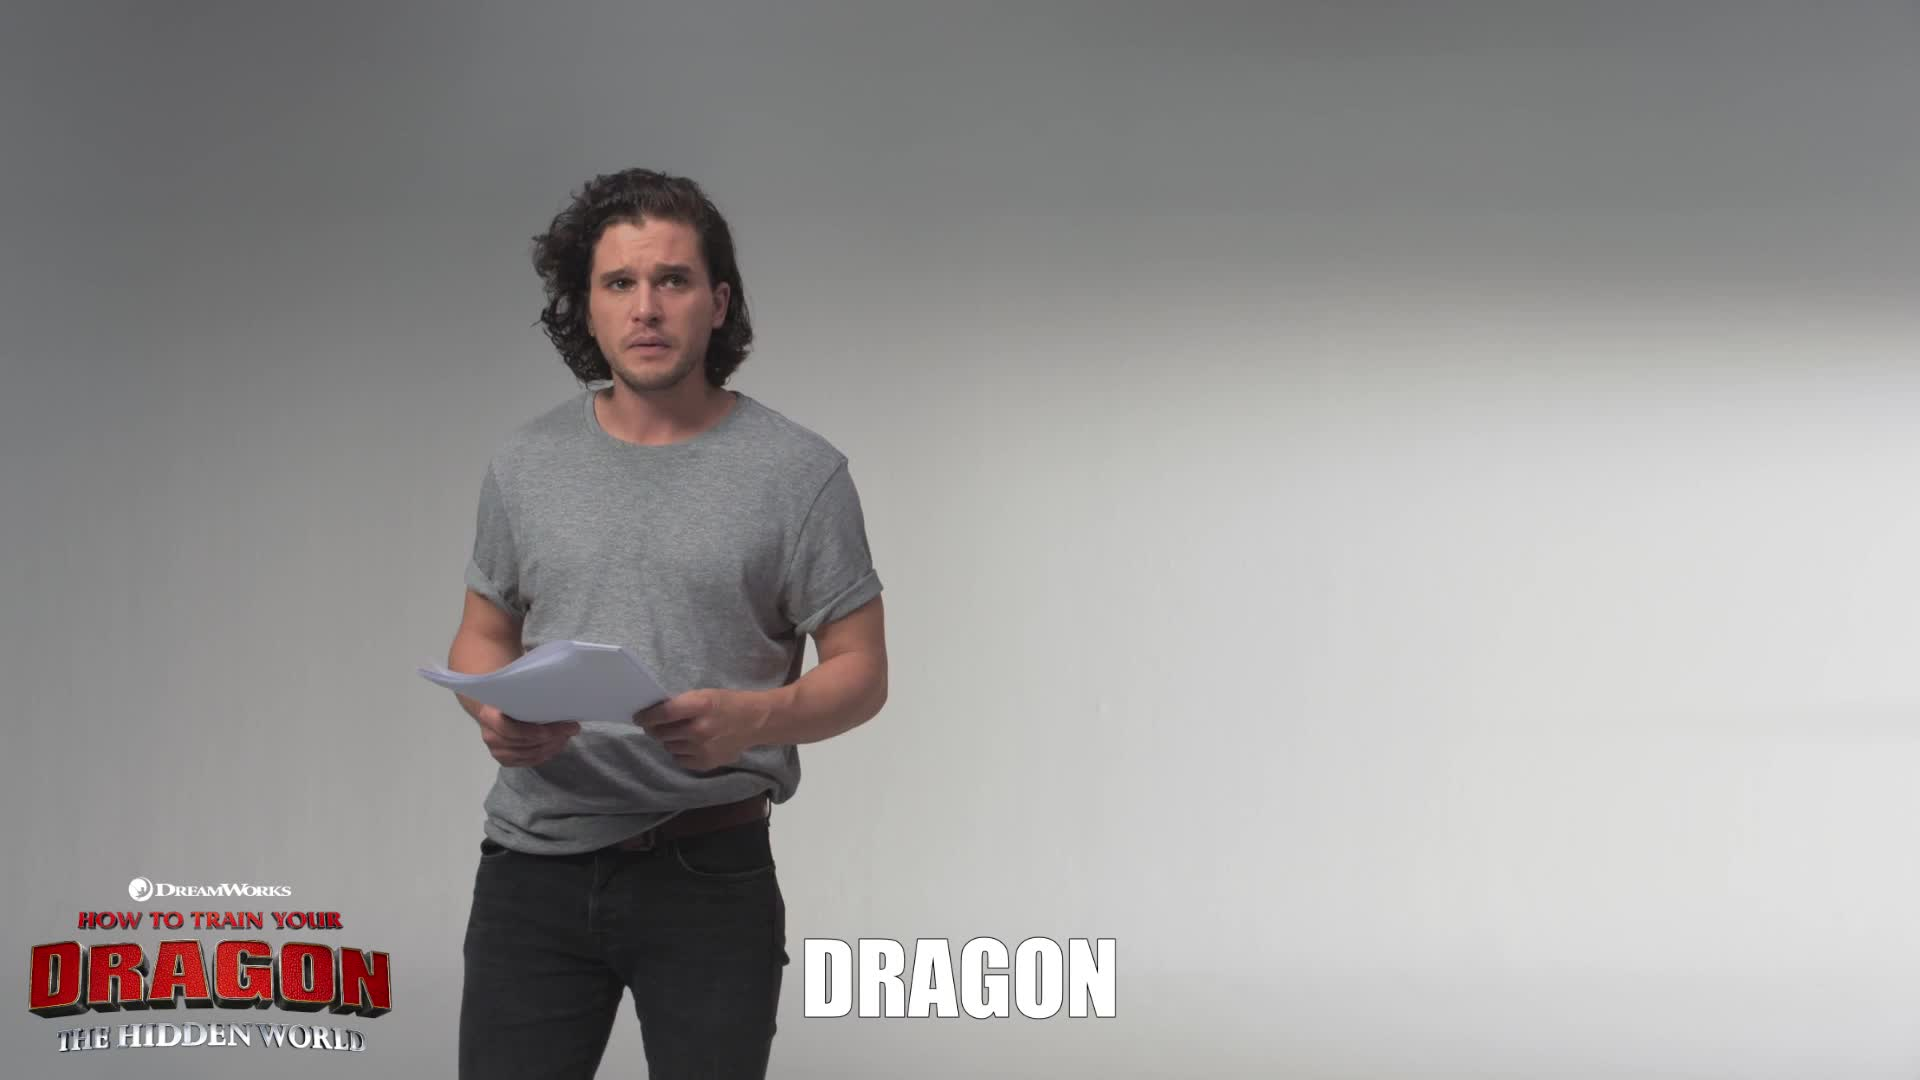 funny, how to train your dragon, how to train your dragon the hidden world, httyd, httyd3, kit harington, prank, toothless, Show Yourself Kit and Toothless Scene GIFs